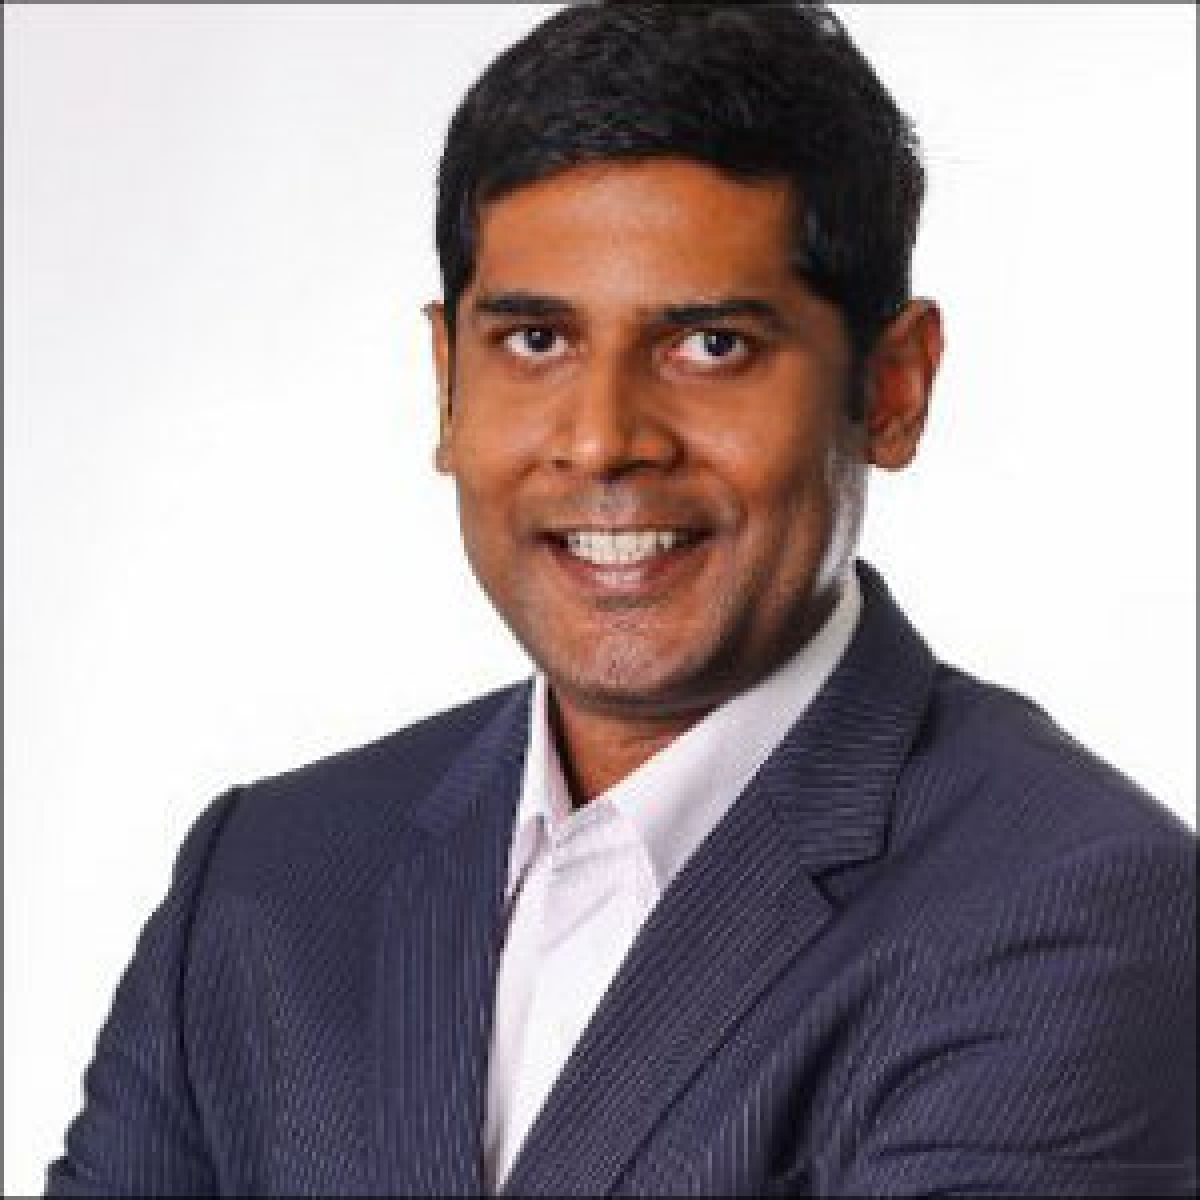 Mindshare appoints Sudipto Roy as MD, Team Unilever for AAR